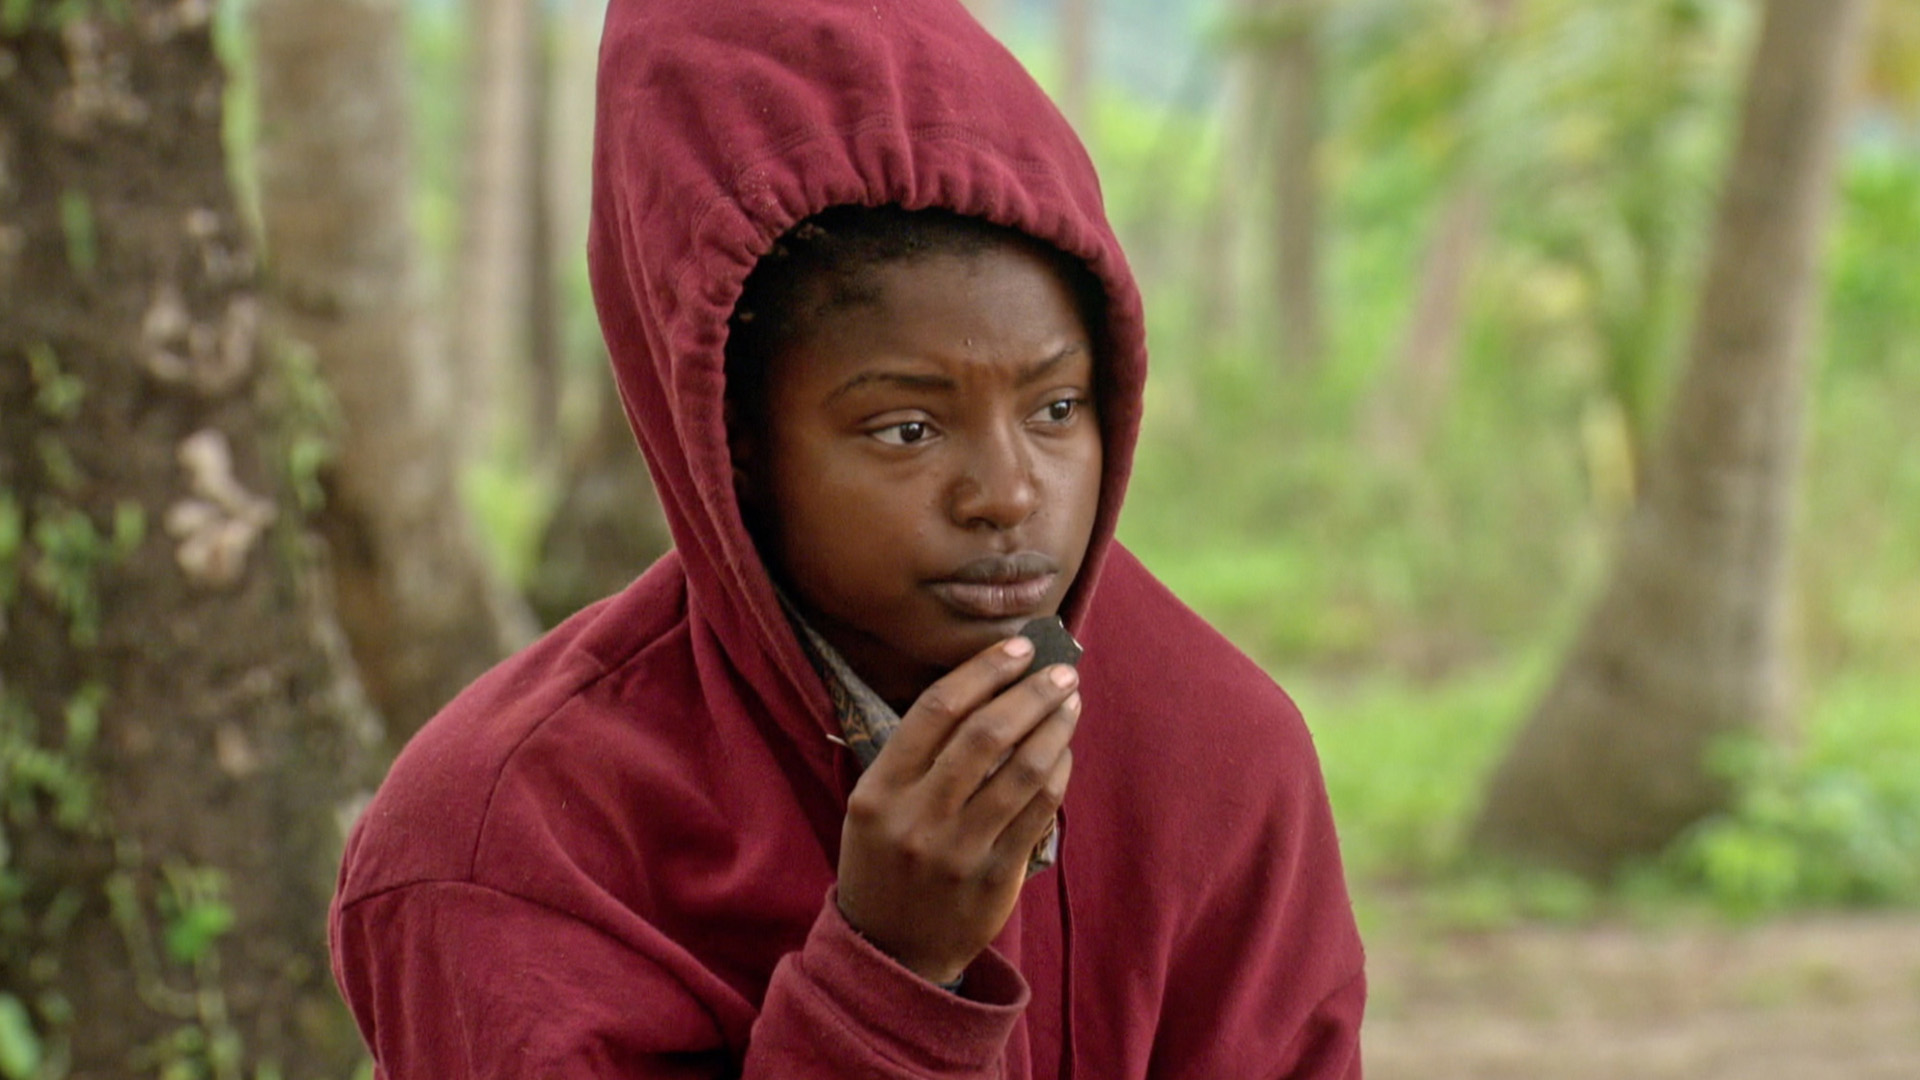 Cydney puts on a hoodie and takes a moment to herself at camp.